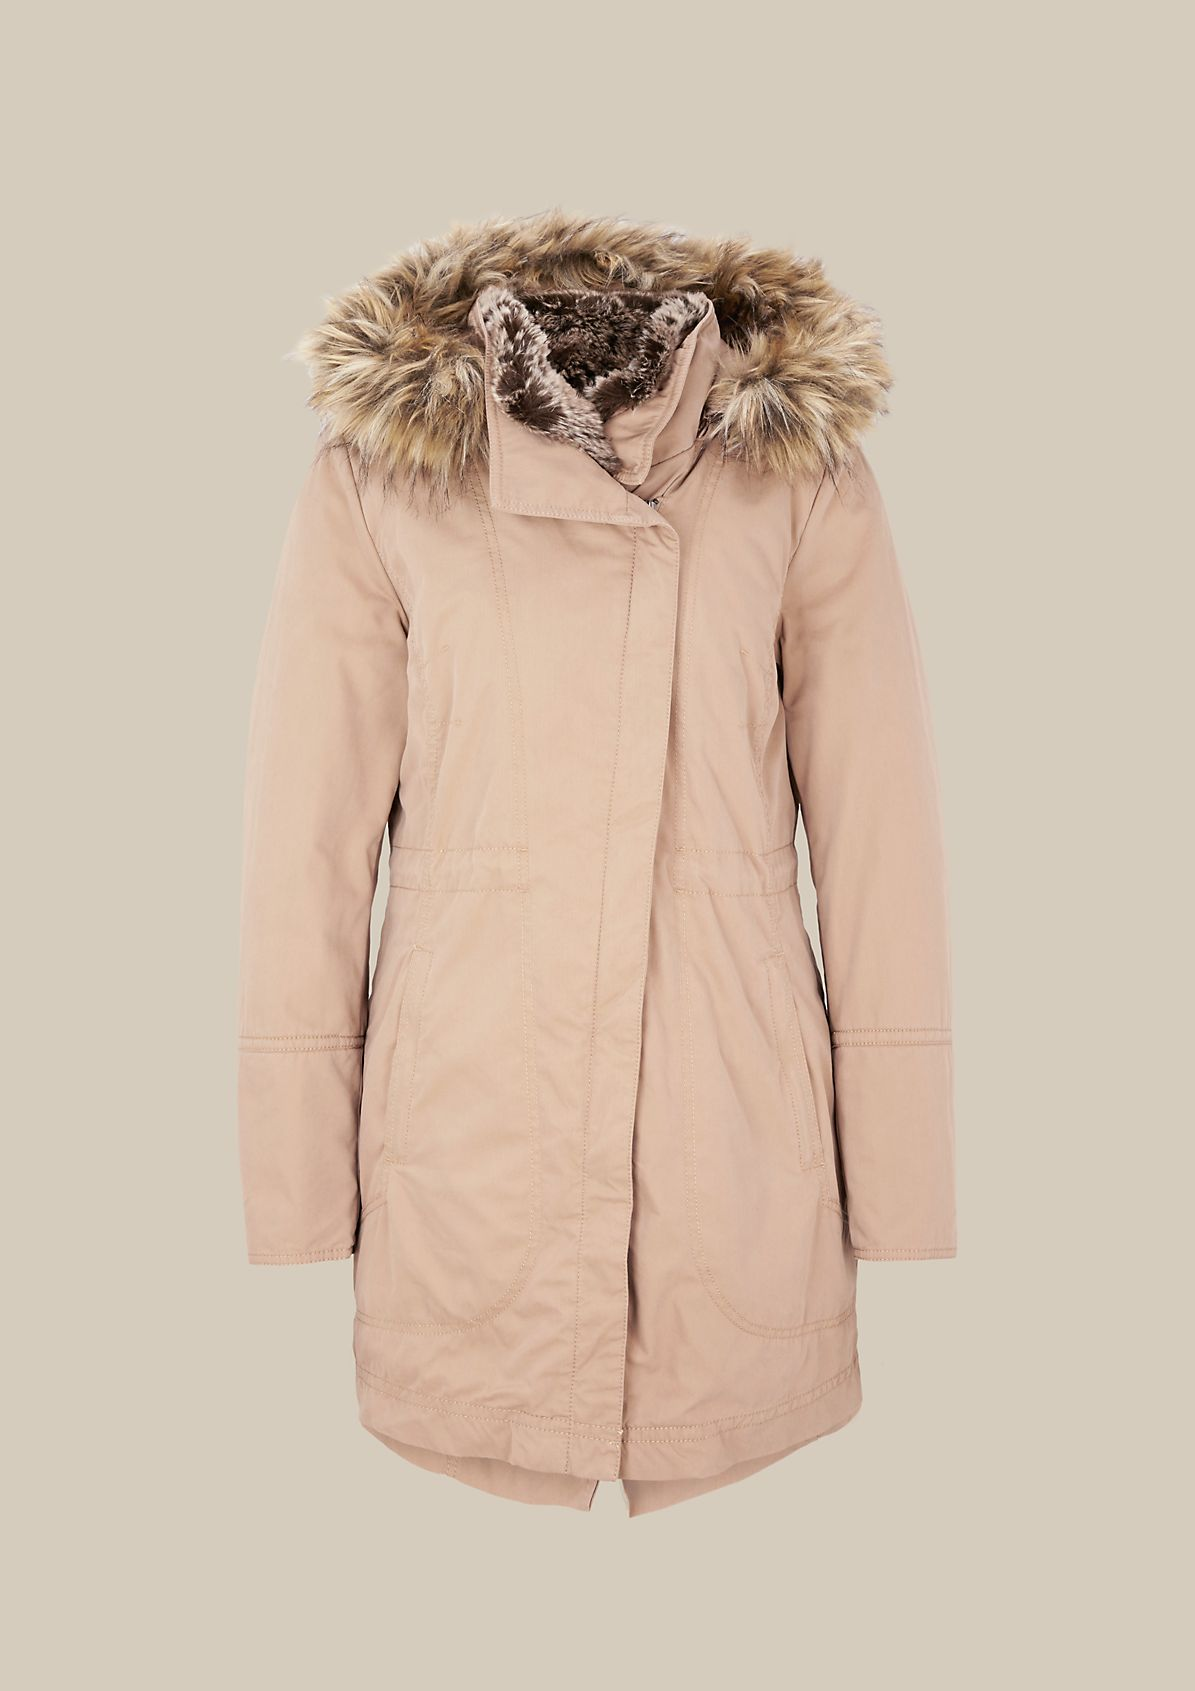 Warm winter parka with detachable hood from comma